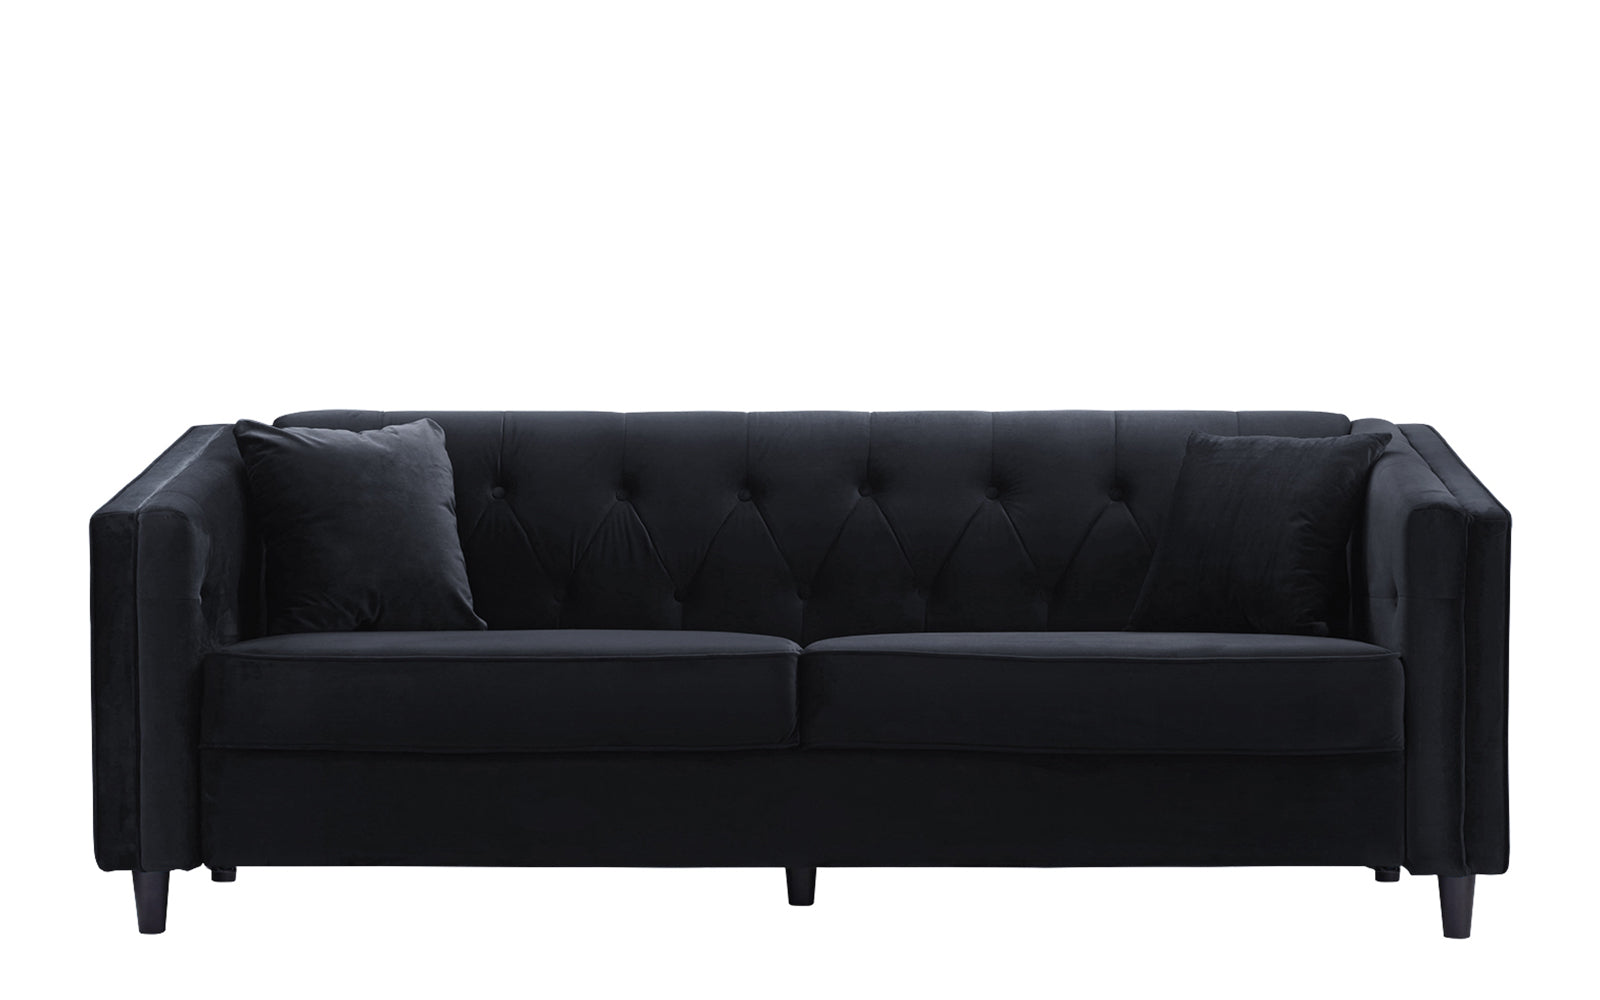 Brand new Adelia Victorian Velvet Sofa with Tufted Button Accents  ND63